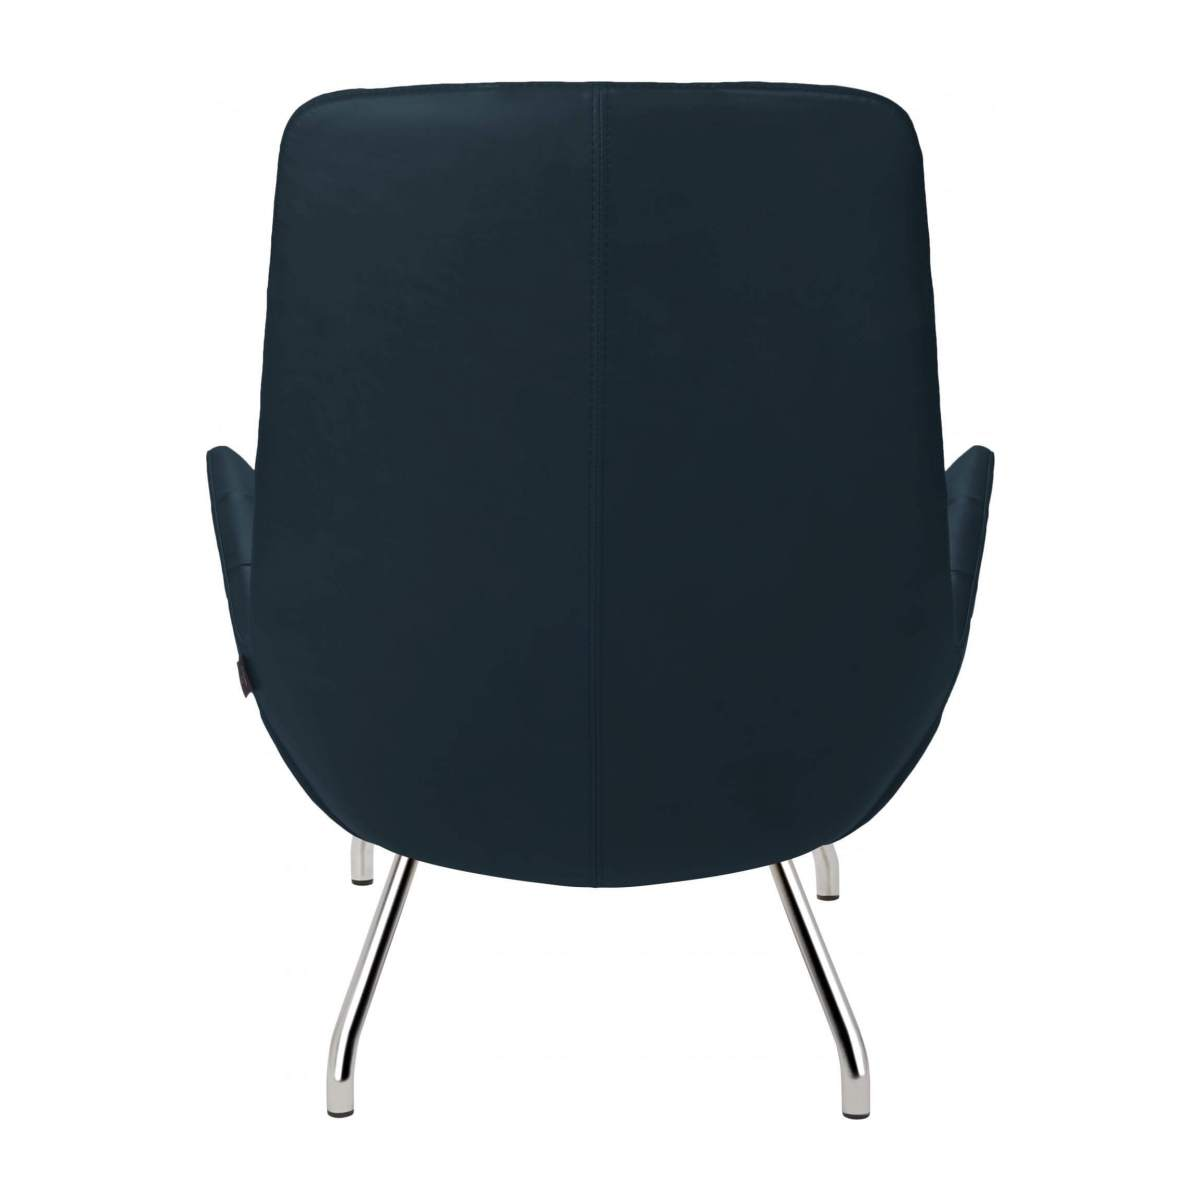 Armchair in Vintage aniline leather, denim blue with chromed metal legs n°3